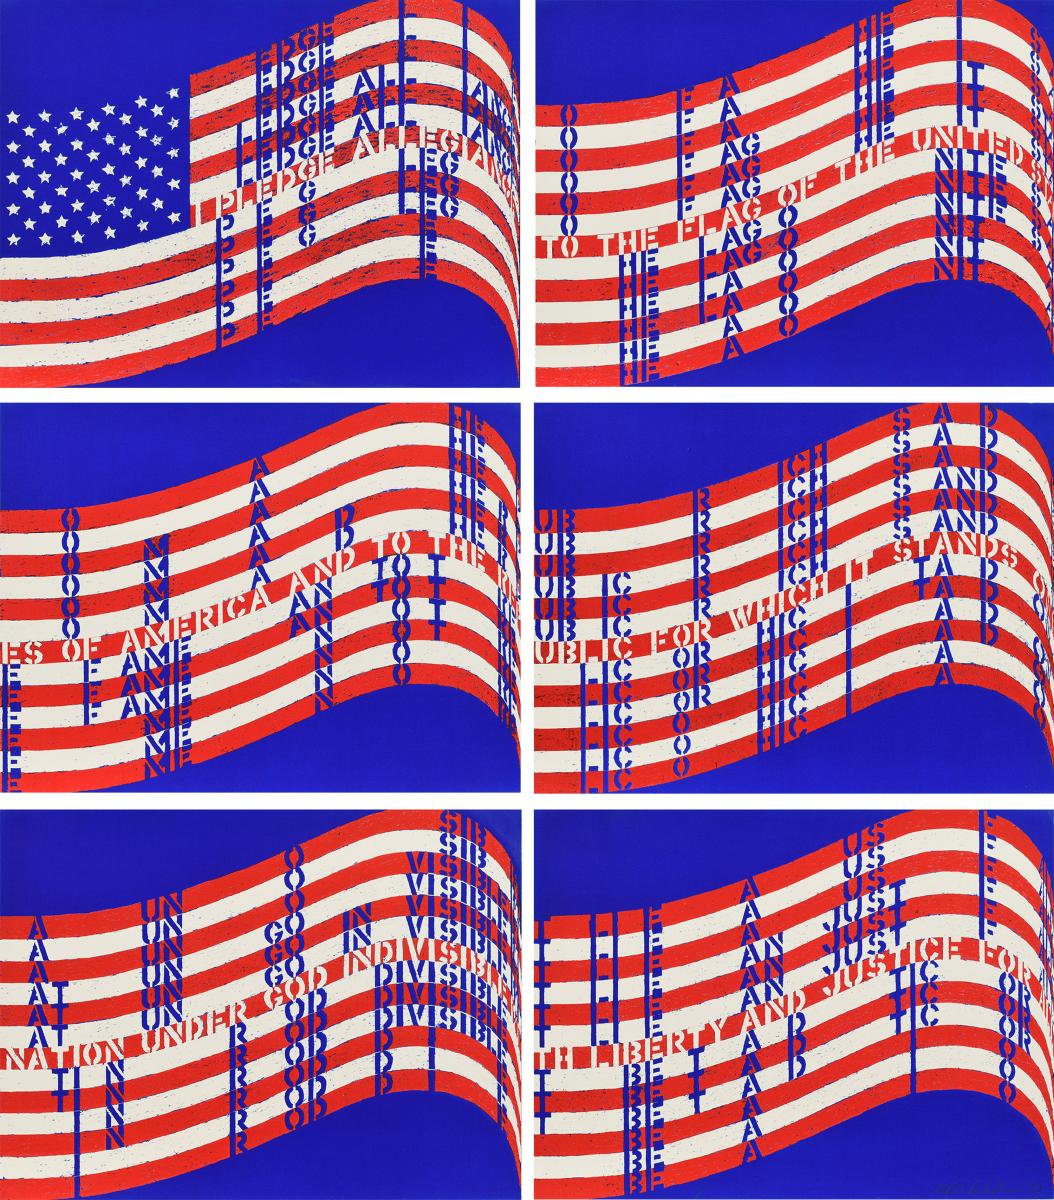 Wav(er)ing Flags 59958-205586, Auktion 181 Los 1, Van Ham ONLINE ONLY | Prints and Multiples